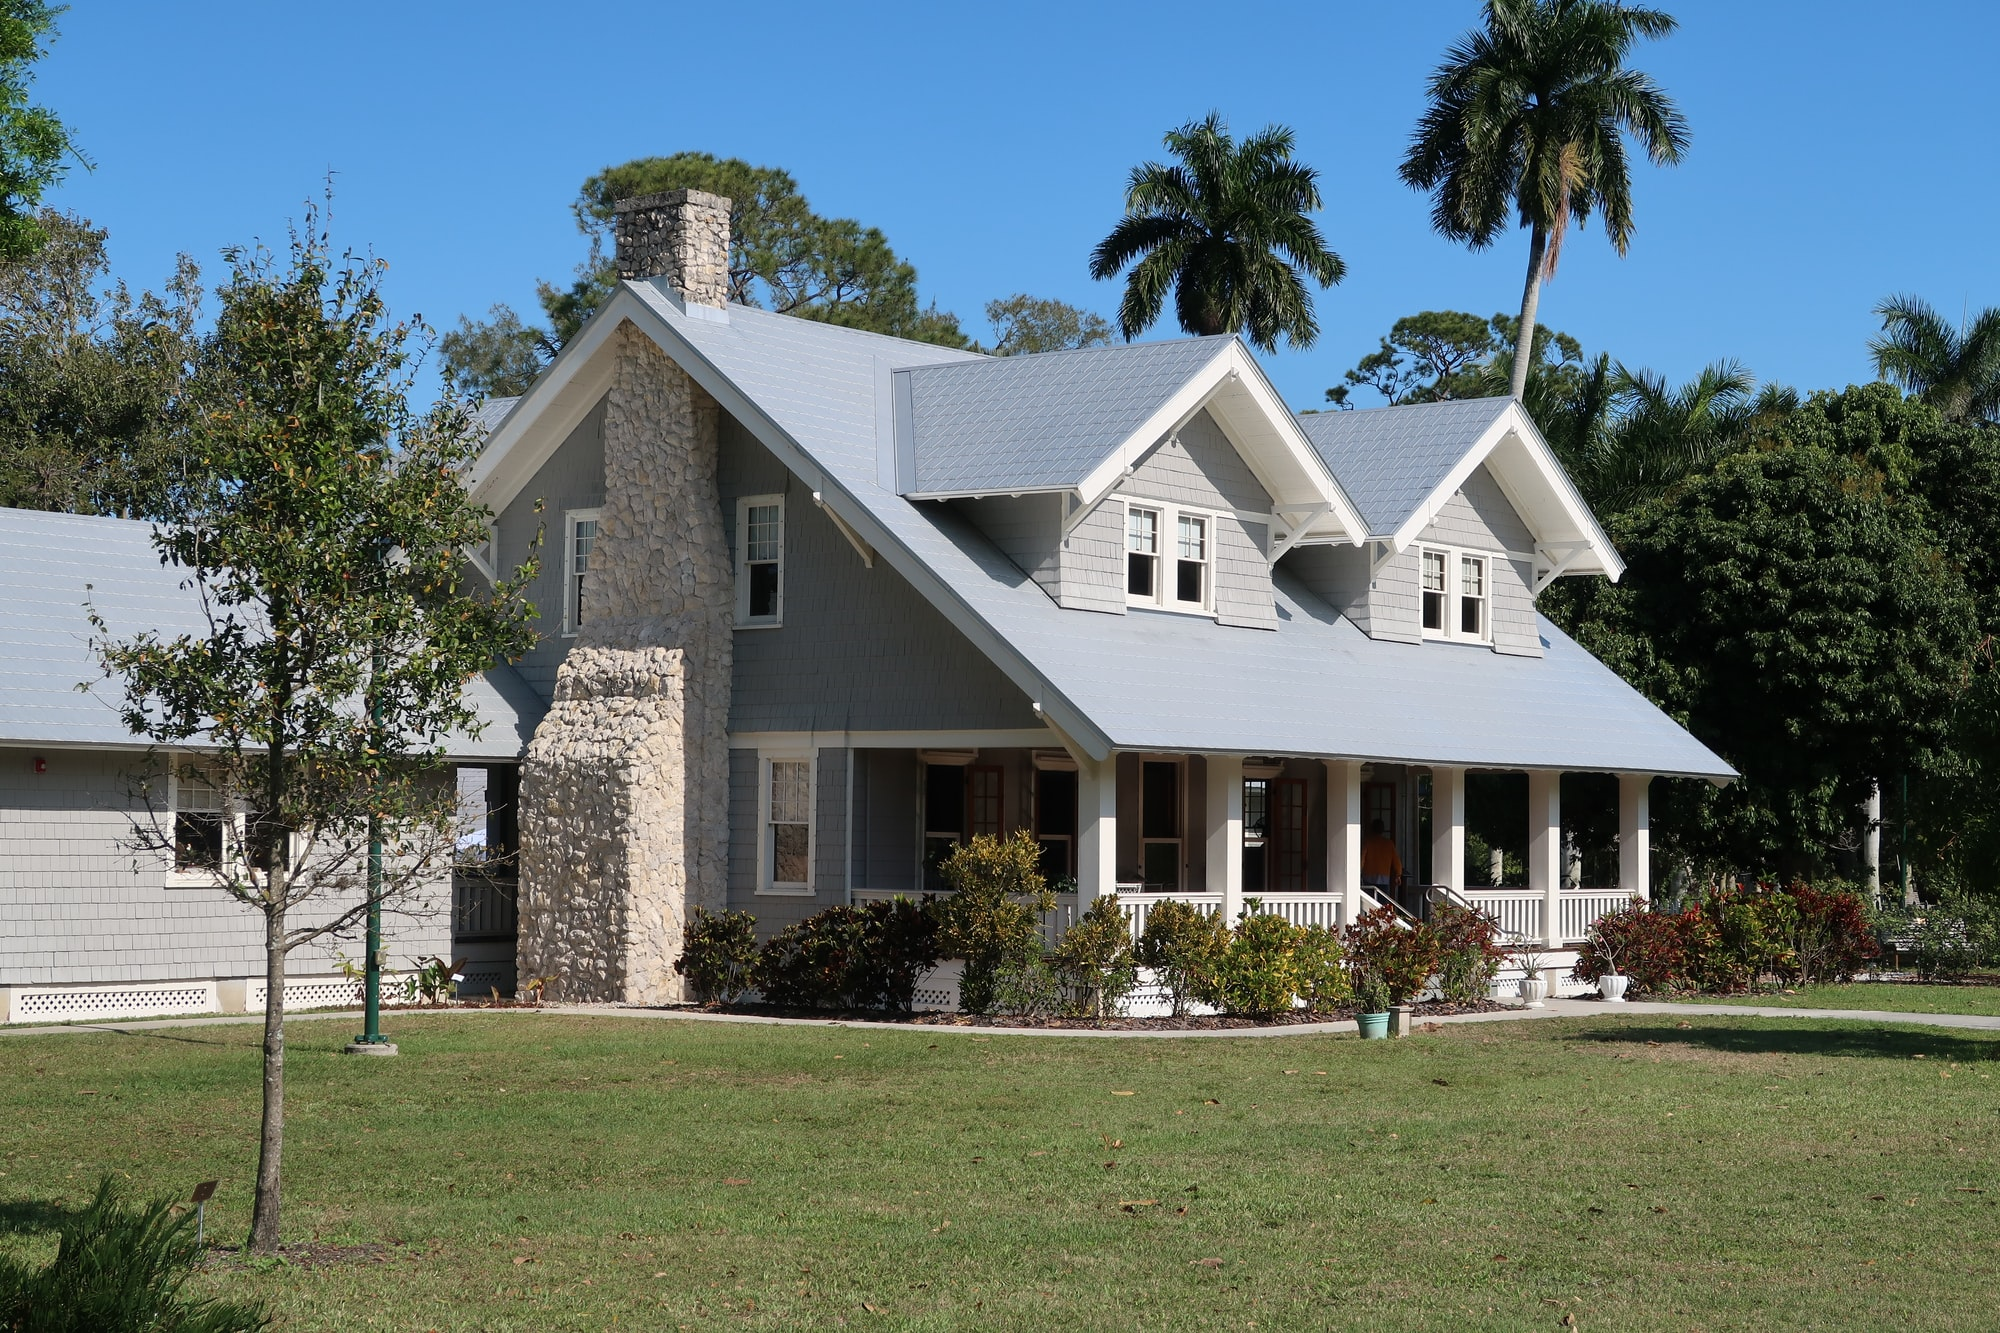 Summer house of Henri Ford, part of the Edison and Ford winter estate. Henri Ford and Thomas Edison were good friends and bought adjacent houses in Fort Myers Florida. These houses are now a museum.